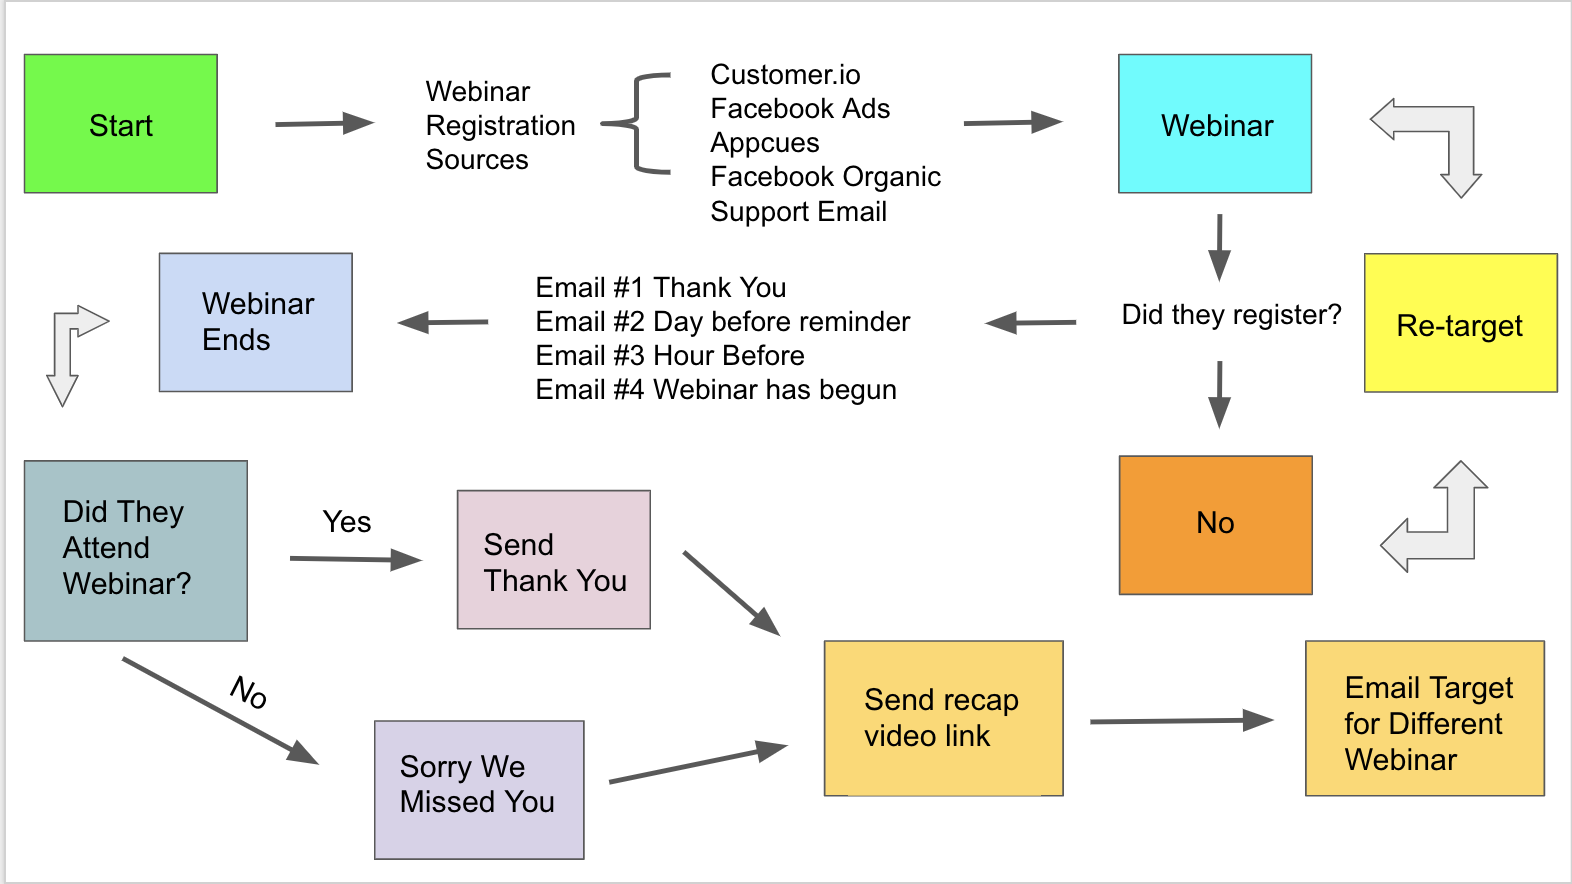 This is a flow chart showing a webinar marketing flow. It shows a marketing funnnel flow for webinars.